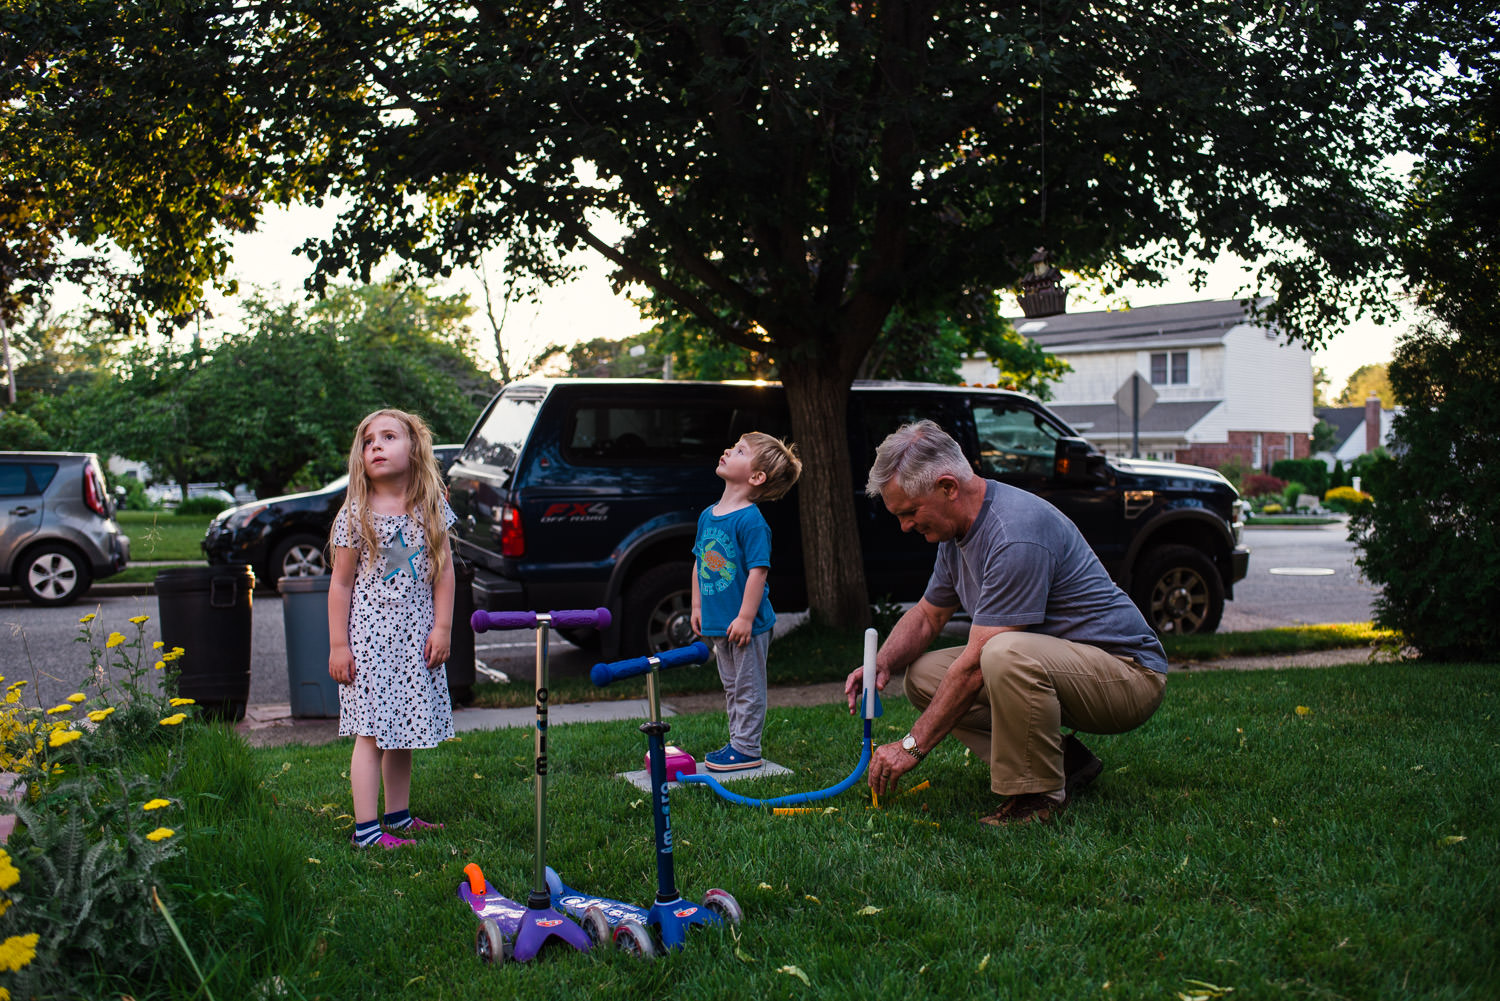 A grandfather helps his grandkids load a stomp rocket.